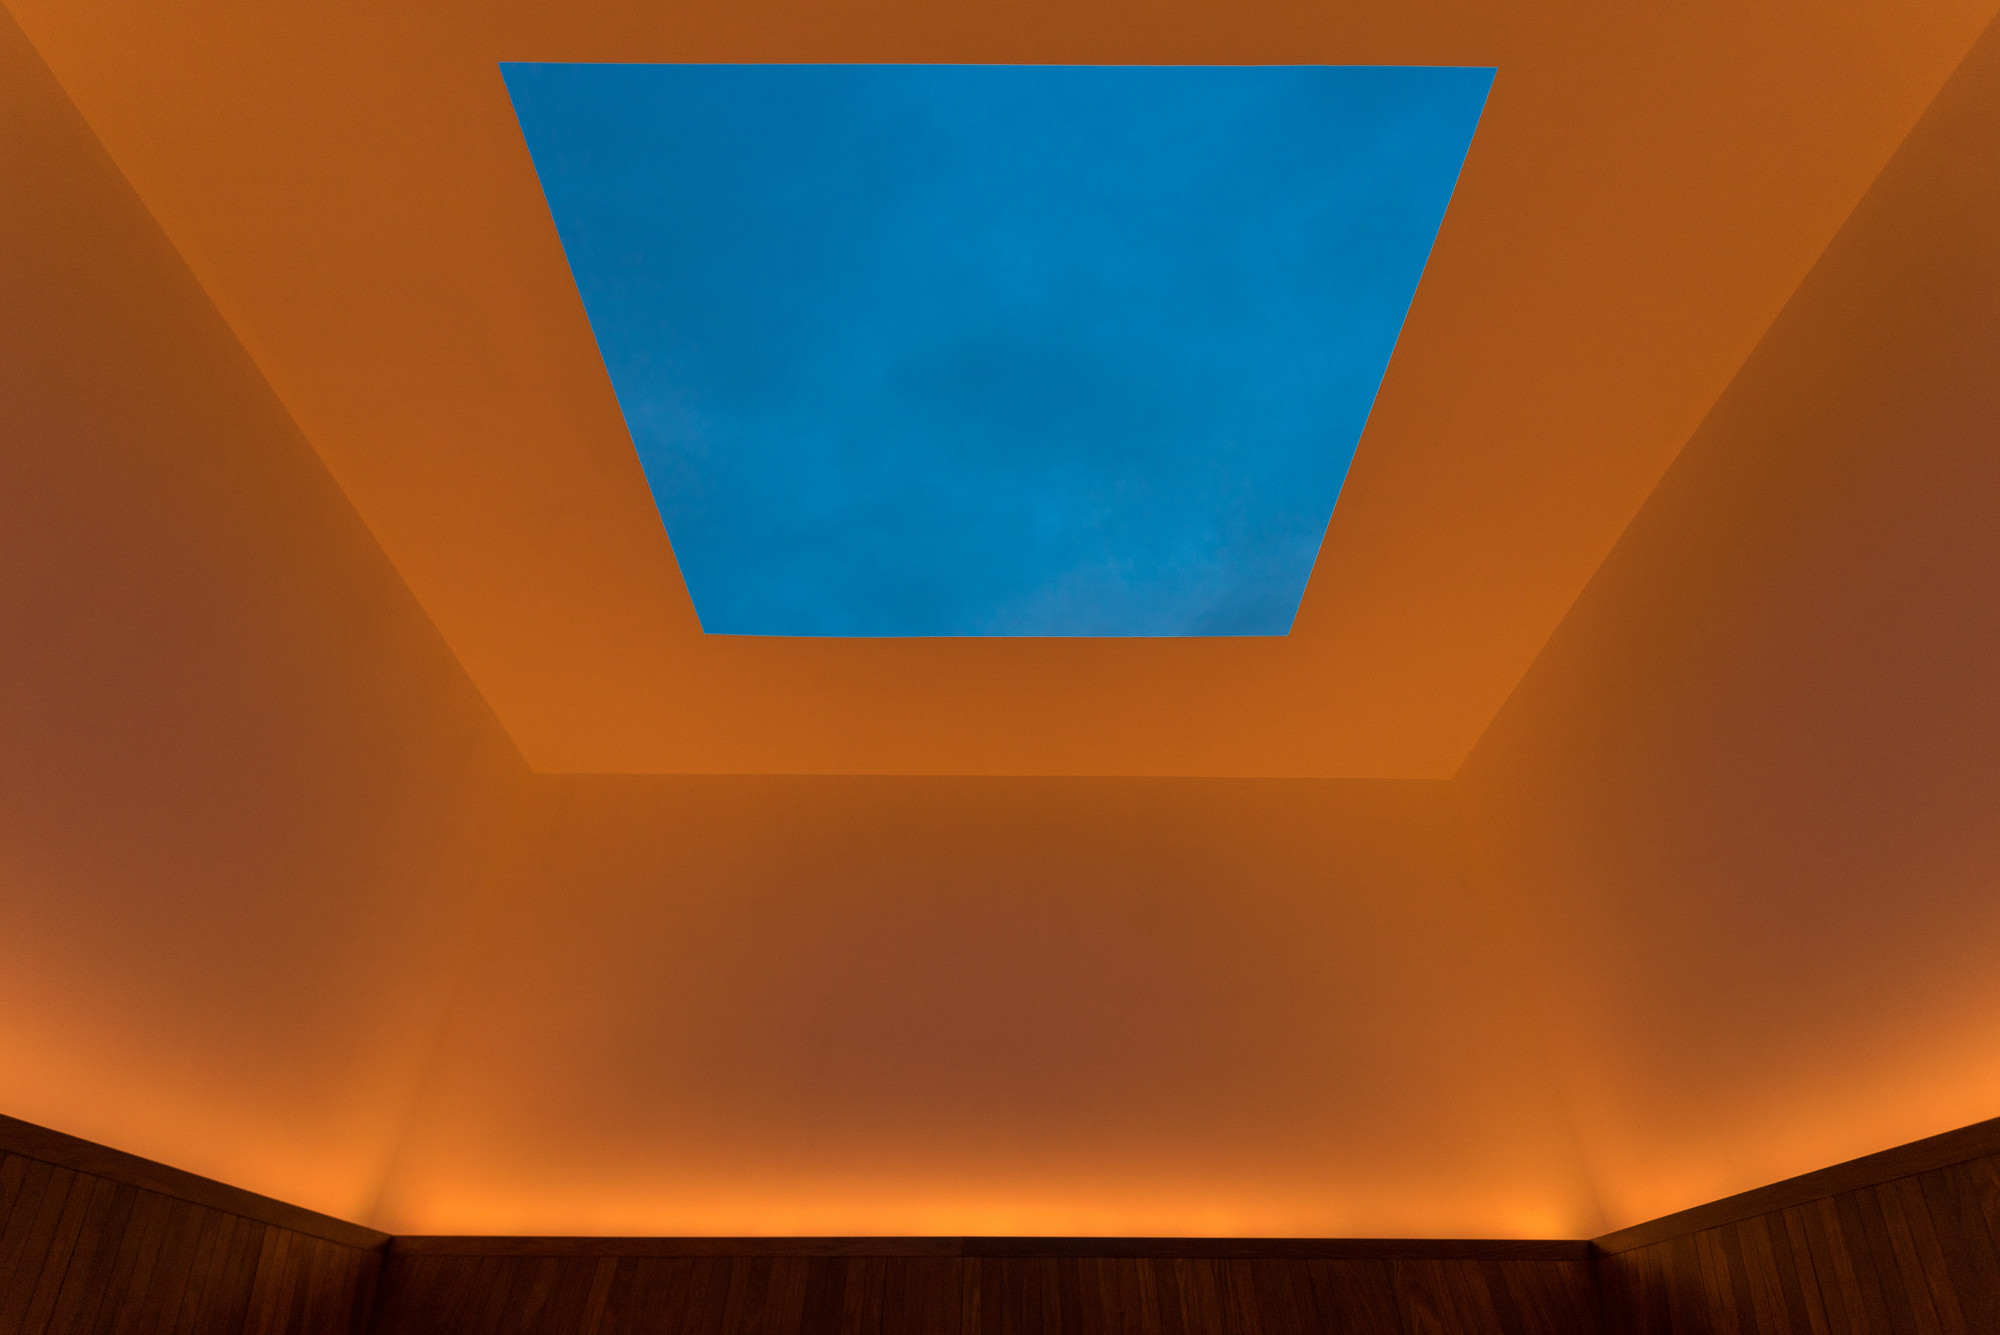 James Turrell. Meeting. 1980–86/2016. Light and space. The Museum of Modern Art, New York. Gift of Mark and Lauren Booth in honor of the 40th anniversary of MoMA PS1. Photo: Pablo Enriquez.